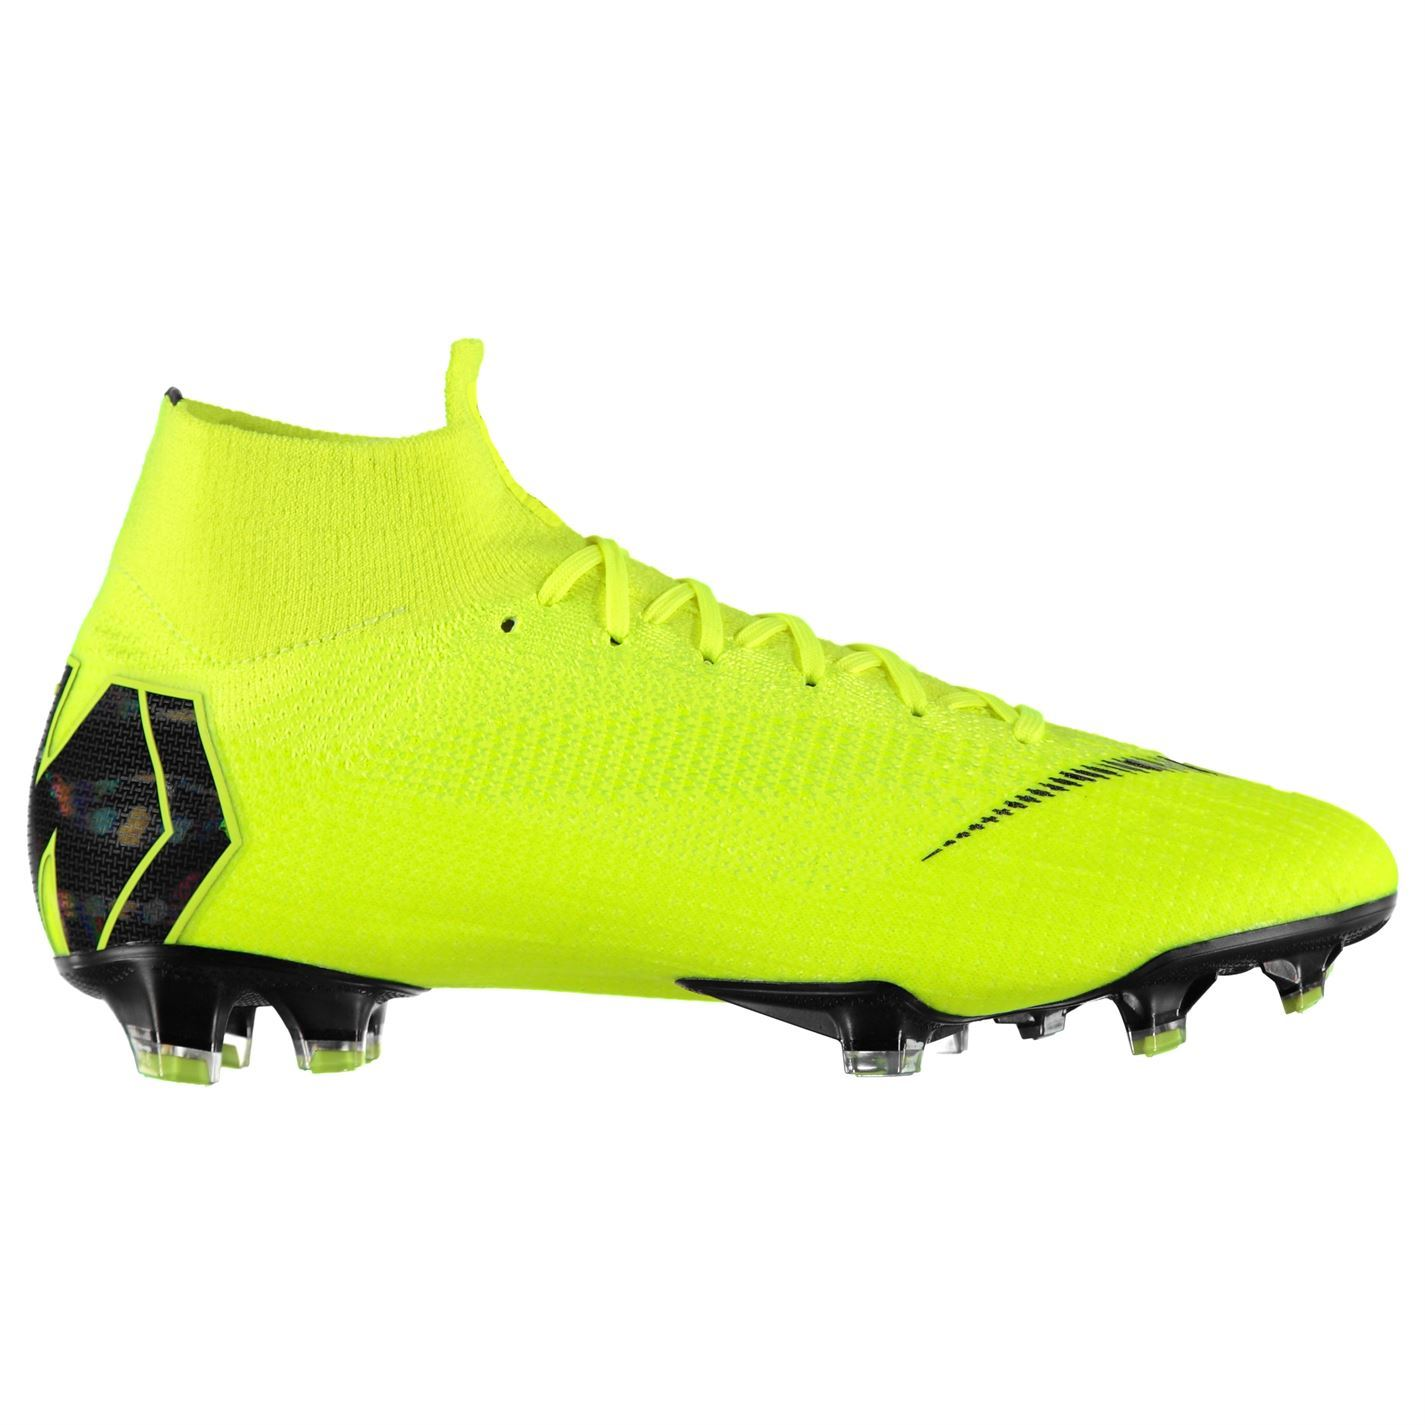 d790c4085798 ... Nike Mercurial Superfly Elite DF Firm Ground Football Boots Mens Soccer  Cleats